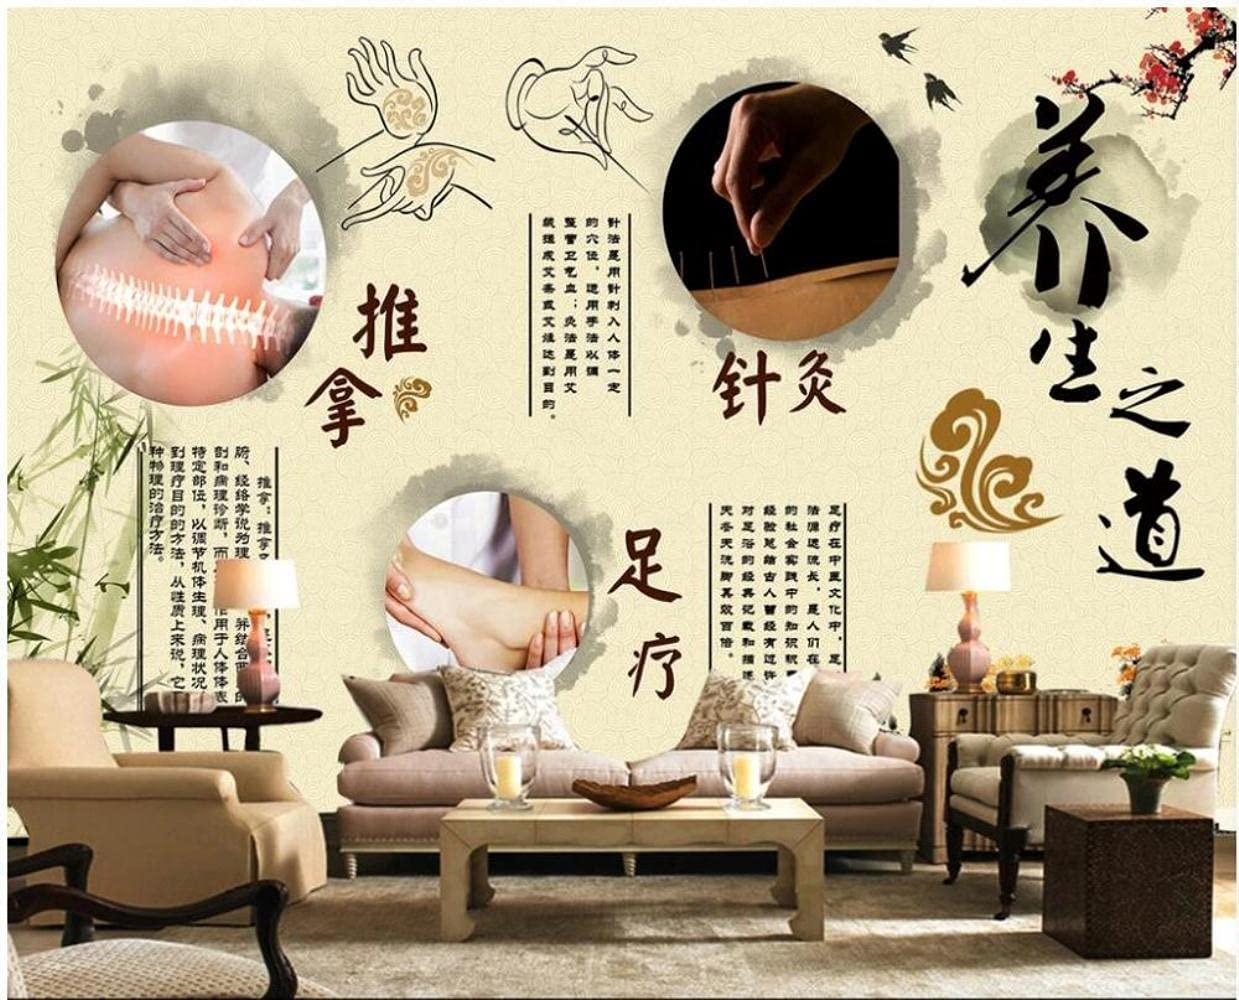 MAZF Custom Mural 3D Photo Medicin Over Manufacturer direct delivery item handling ☆ Wallpaper Traditional Chinese